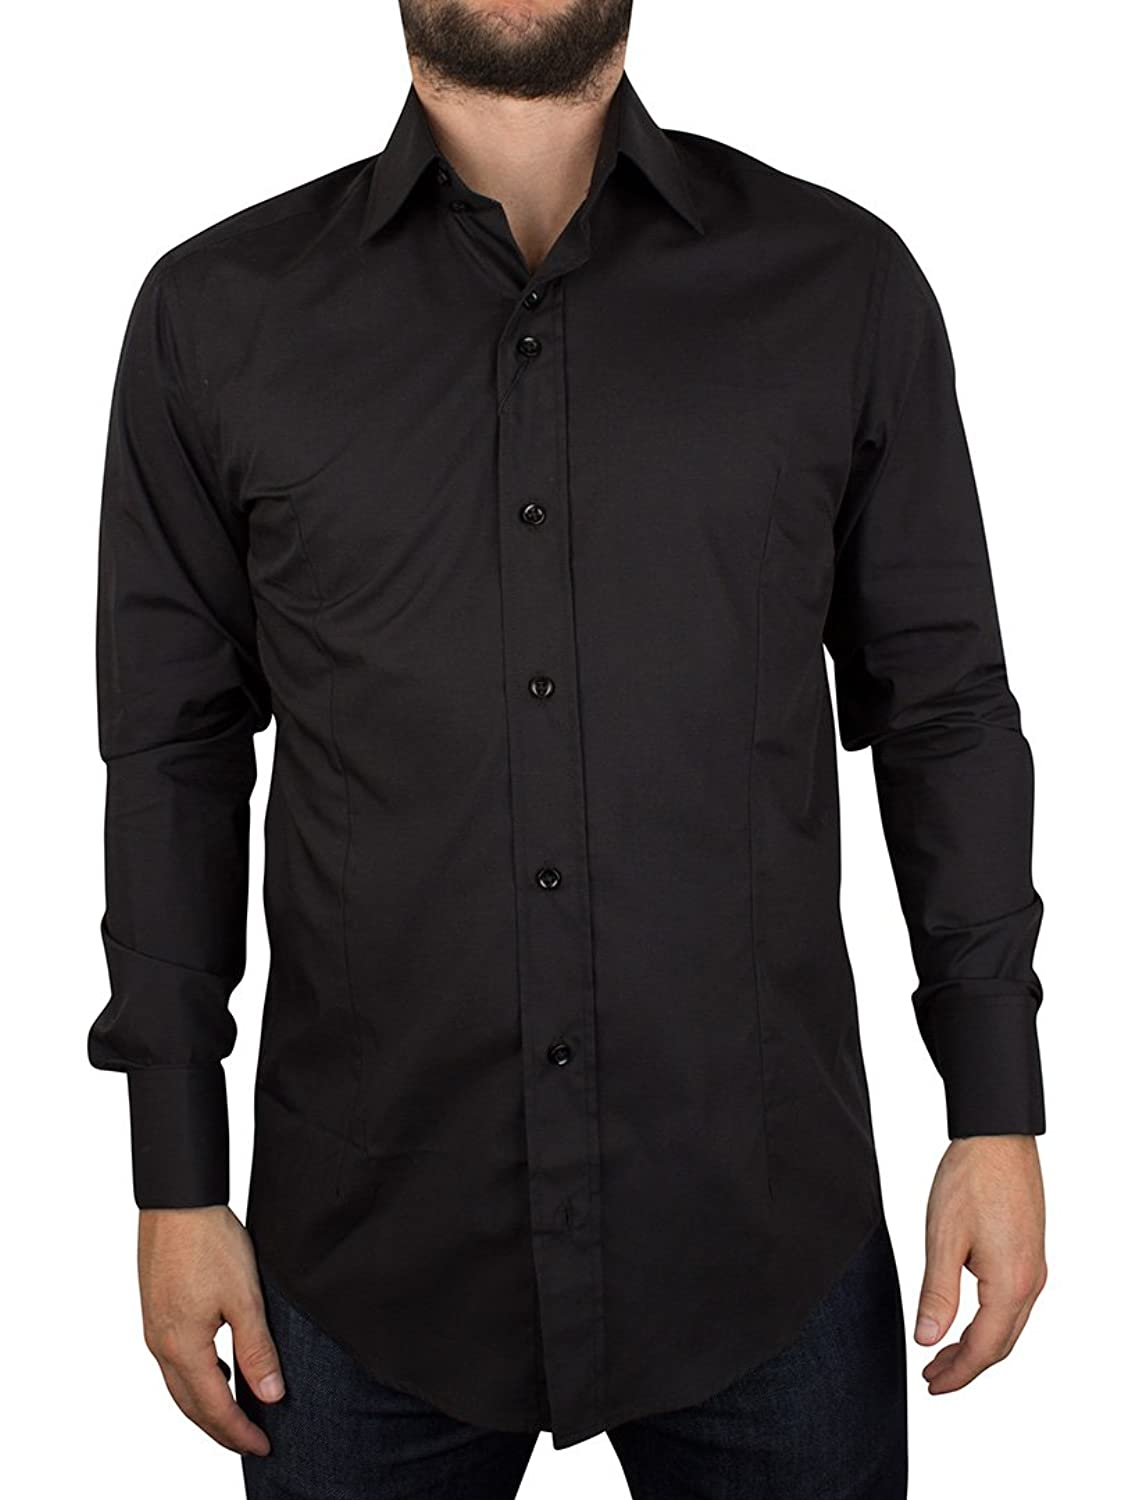 Mens Guide London Black Smart Double Cuff Shirt Free Cuff-Links LS73159 S - 4XL